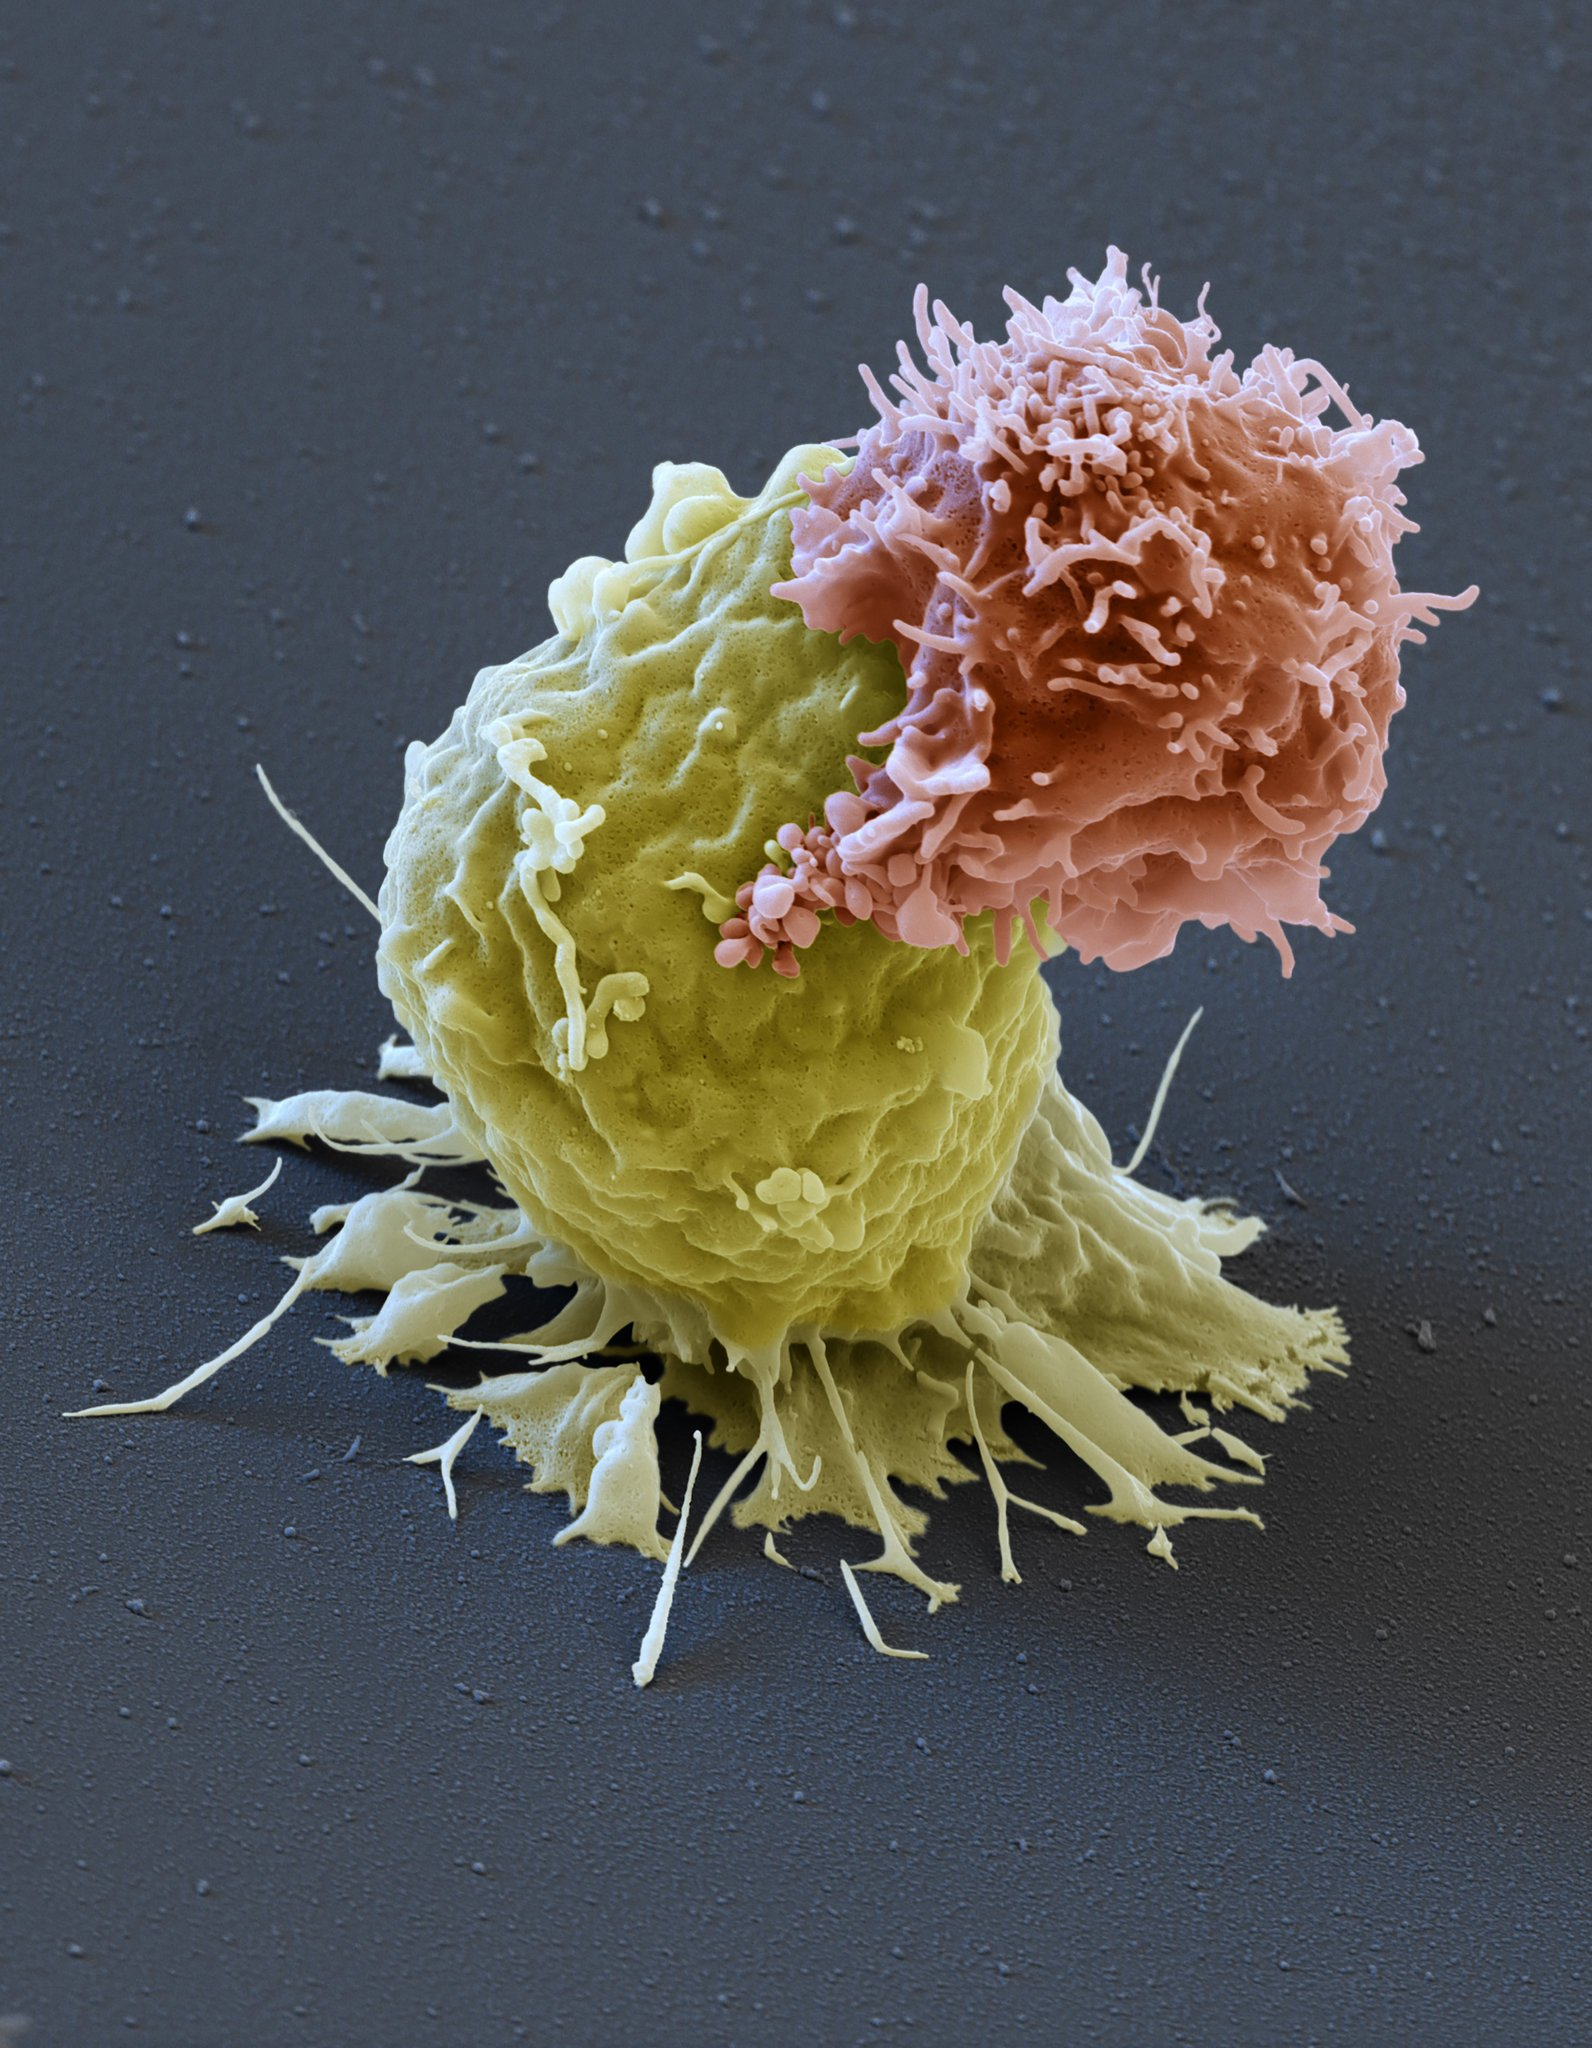 Photo: Cancer fighting T-cell attacking Leukemia cell from New York Times; Eye of Science, via Science Source